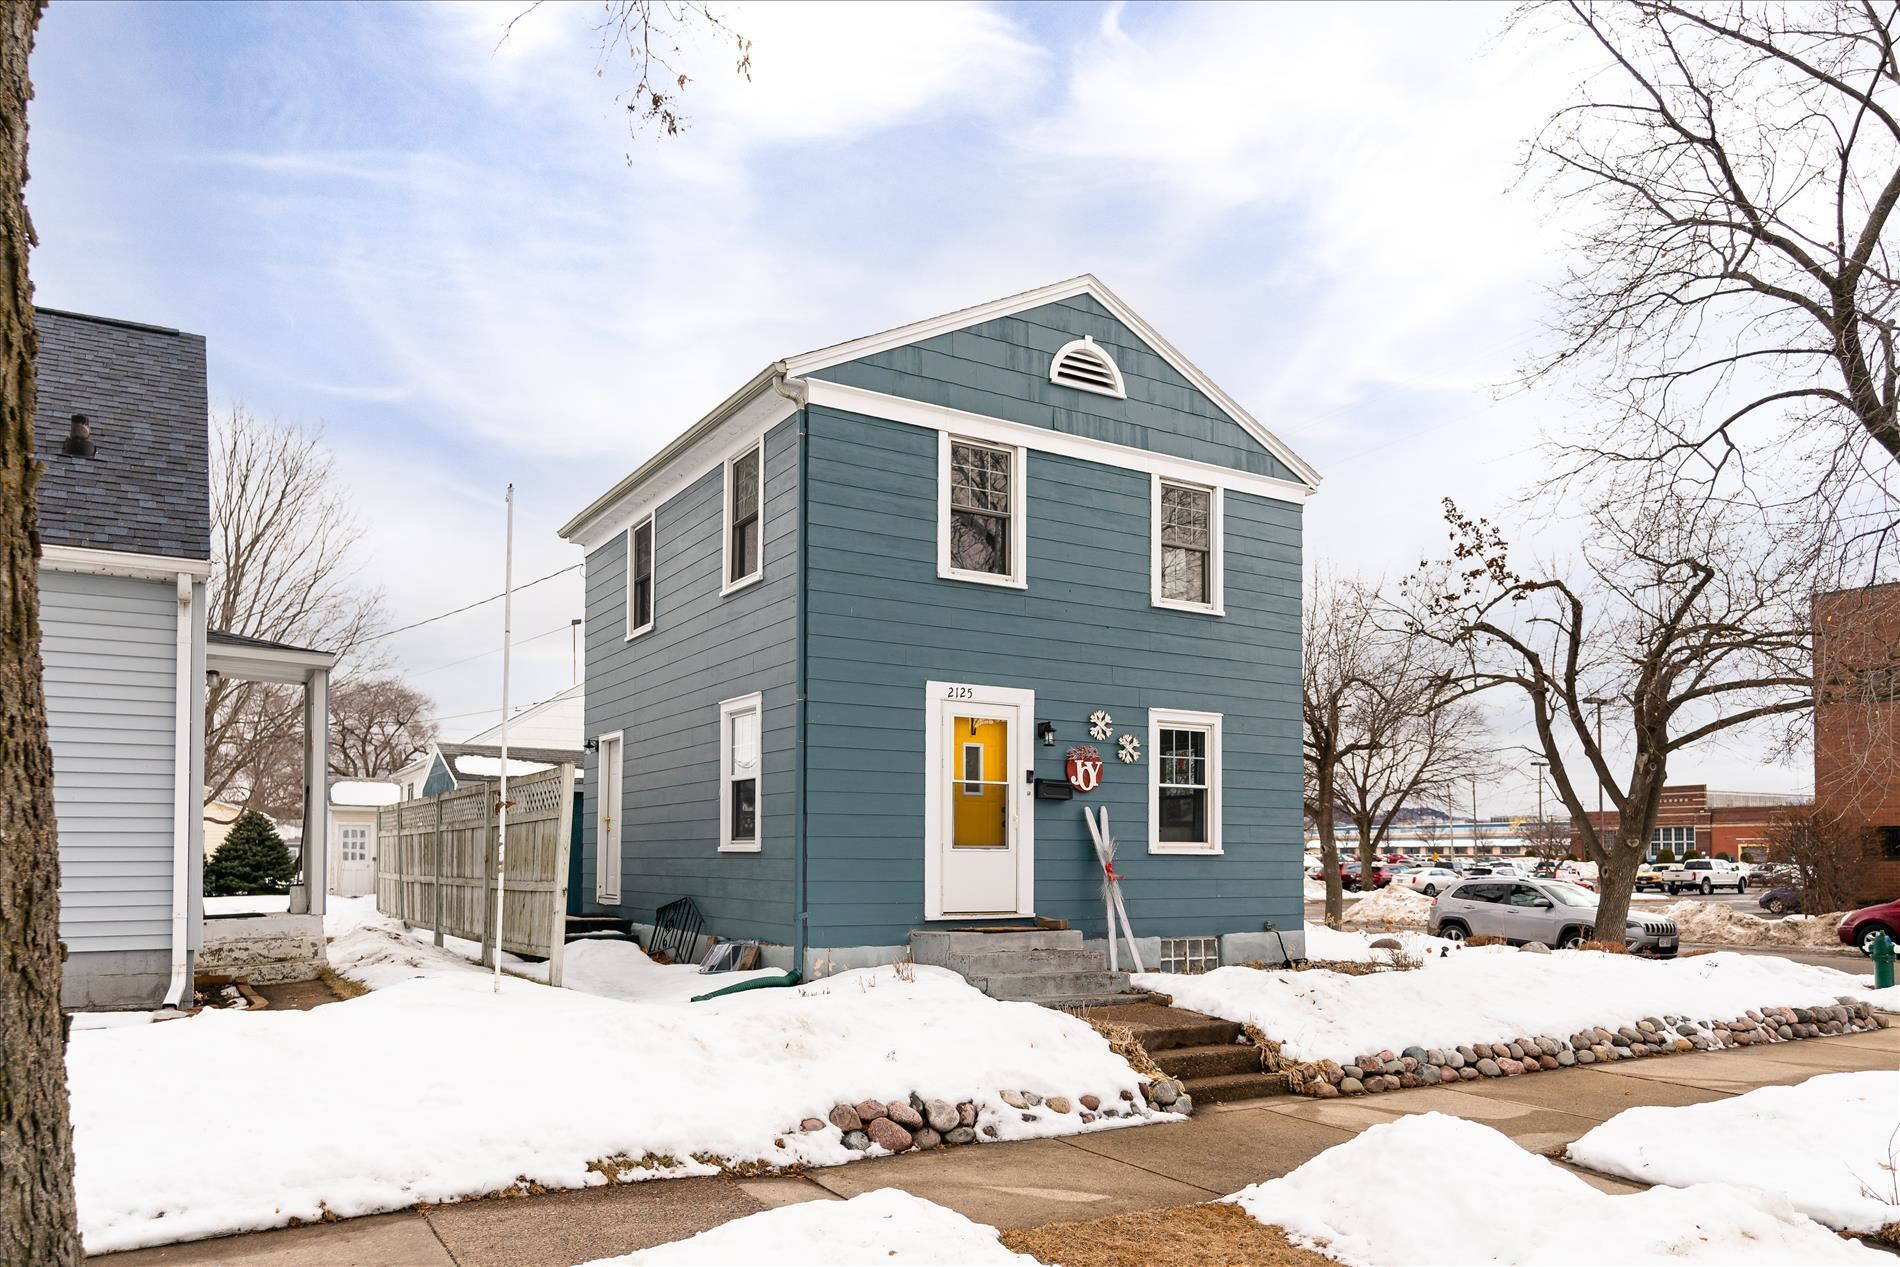 2125 17th ST S, La Crosse, WI 54601 - MLS#: 1729228